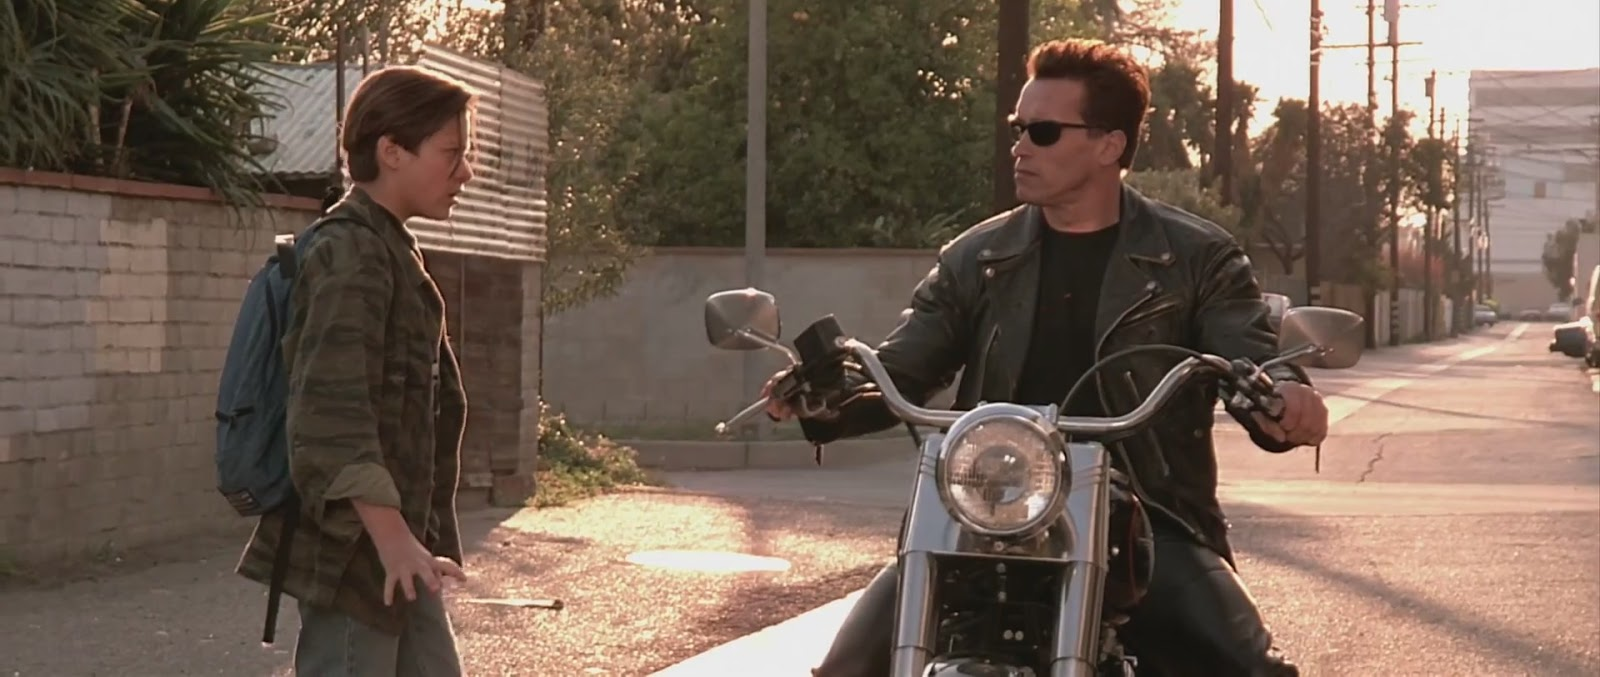 Watch Free Movies Online Terminator 2 Judgment Day